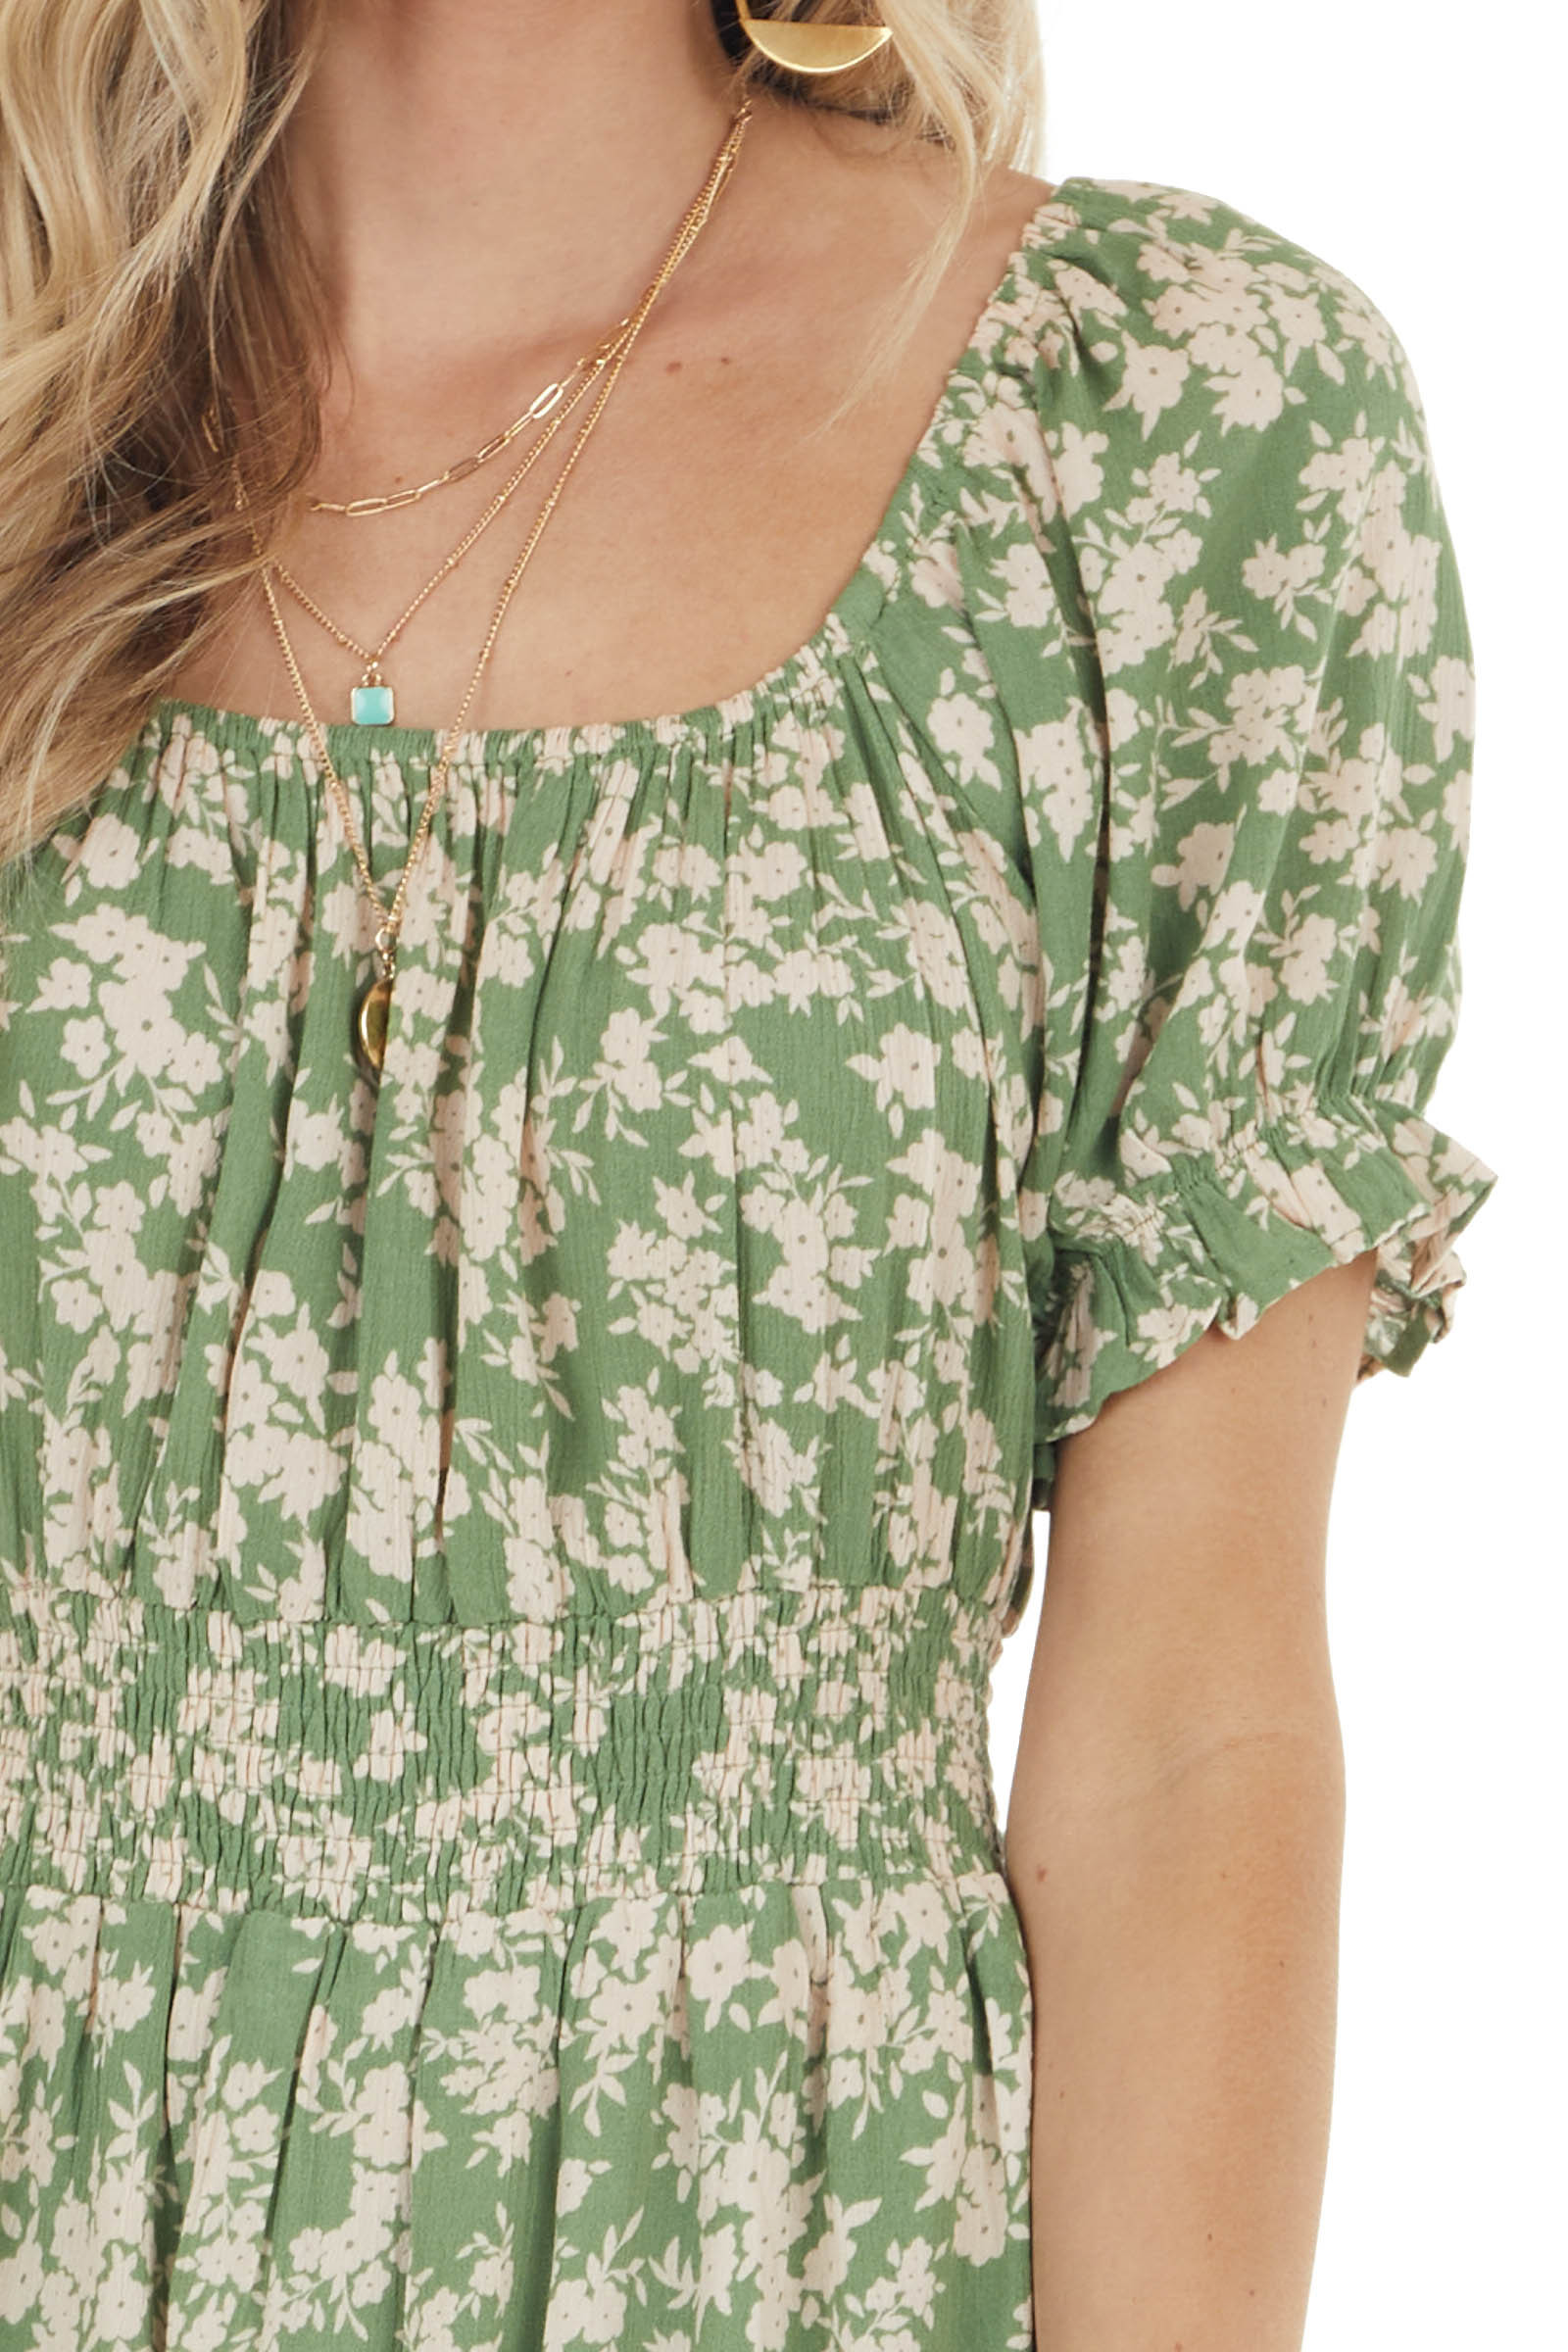 Rich Pistachio Floral Print Short Dress with Smocked Detail